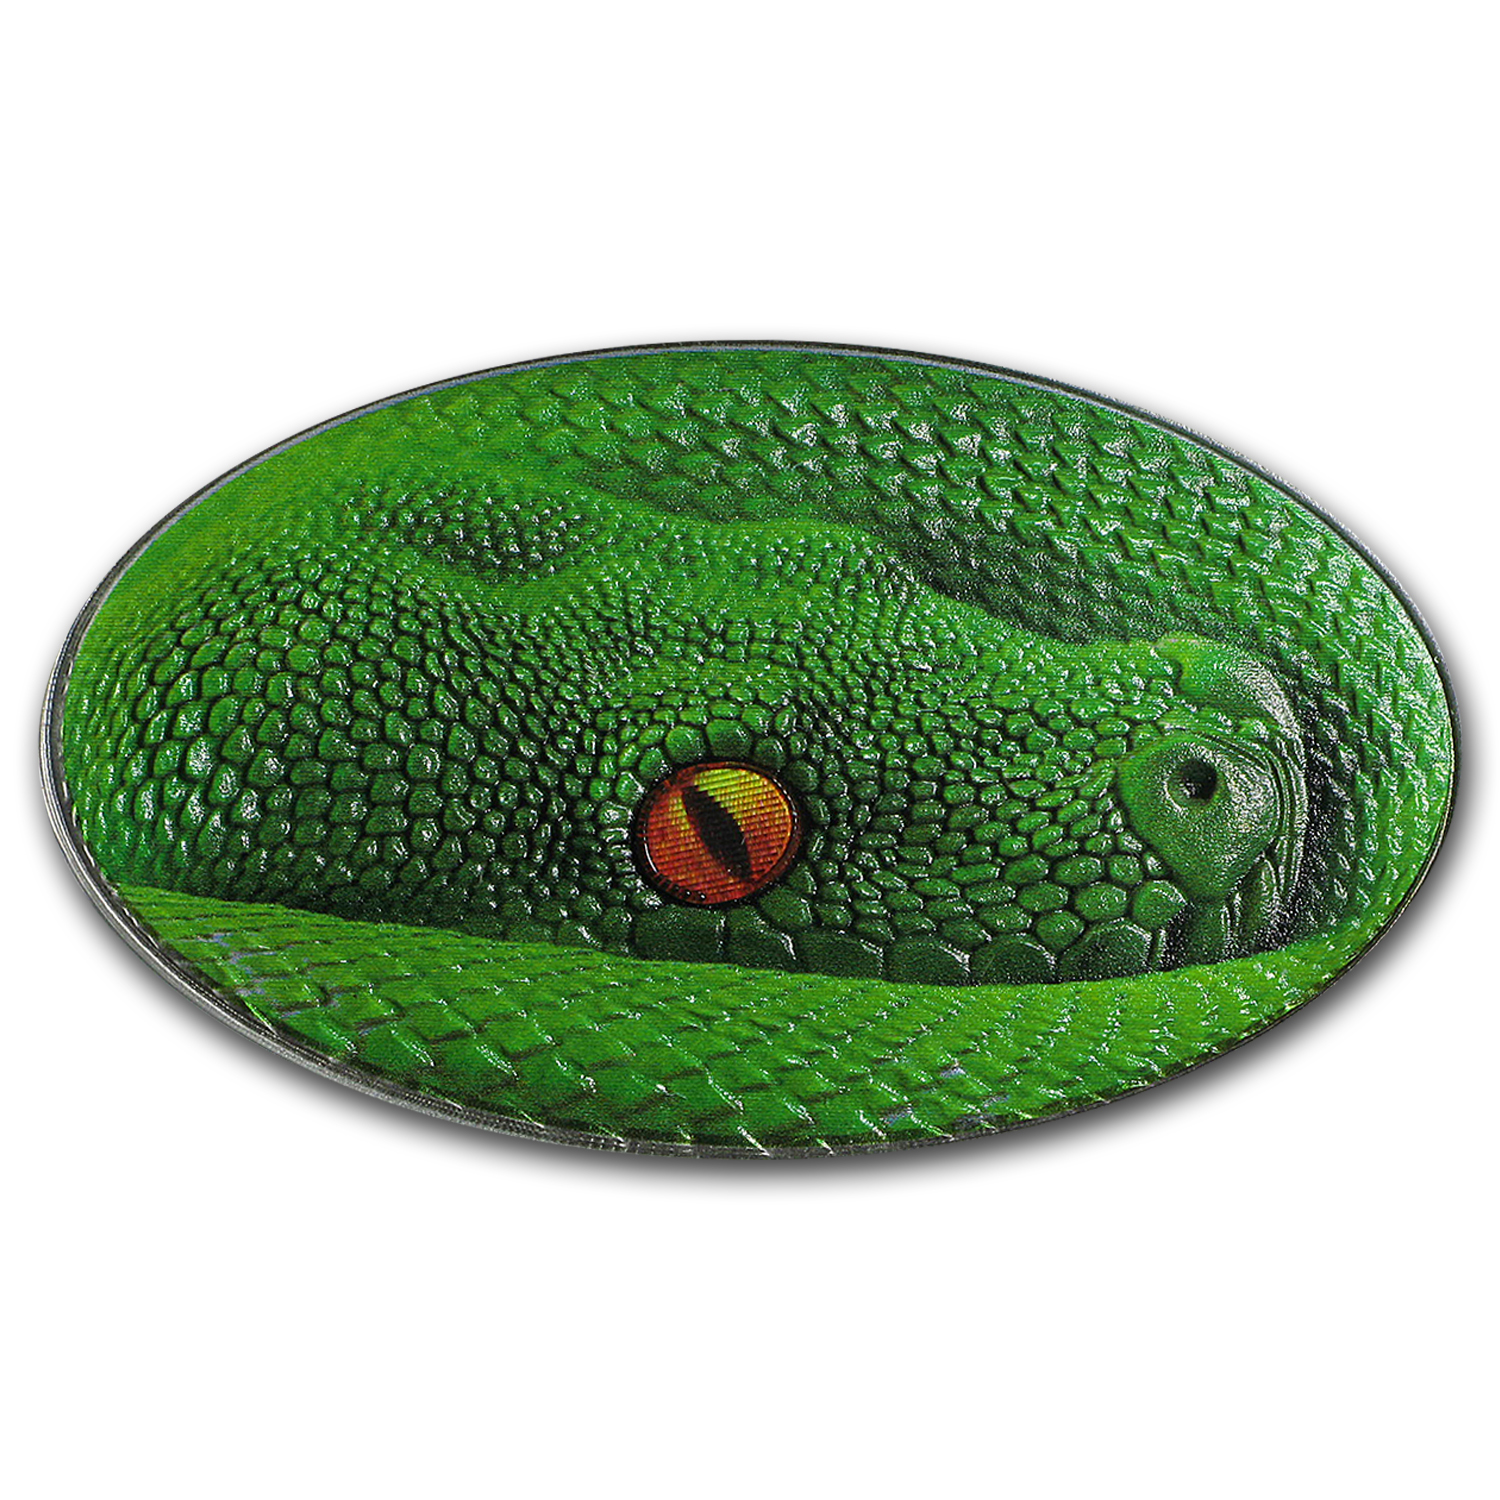 2016 Niue 1 oz Silver Animal Skin Green Tree Python